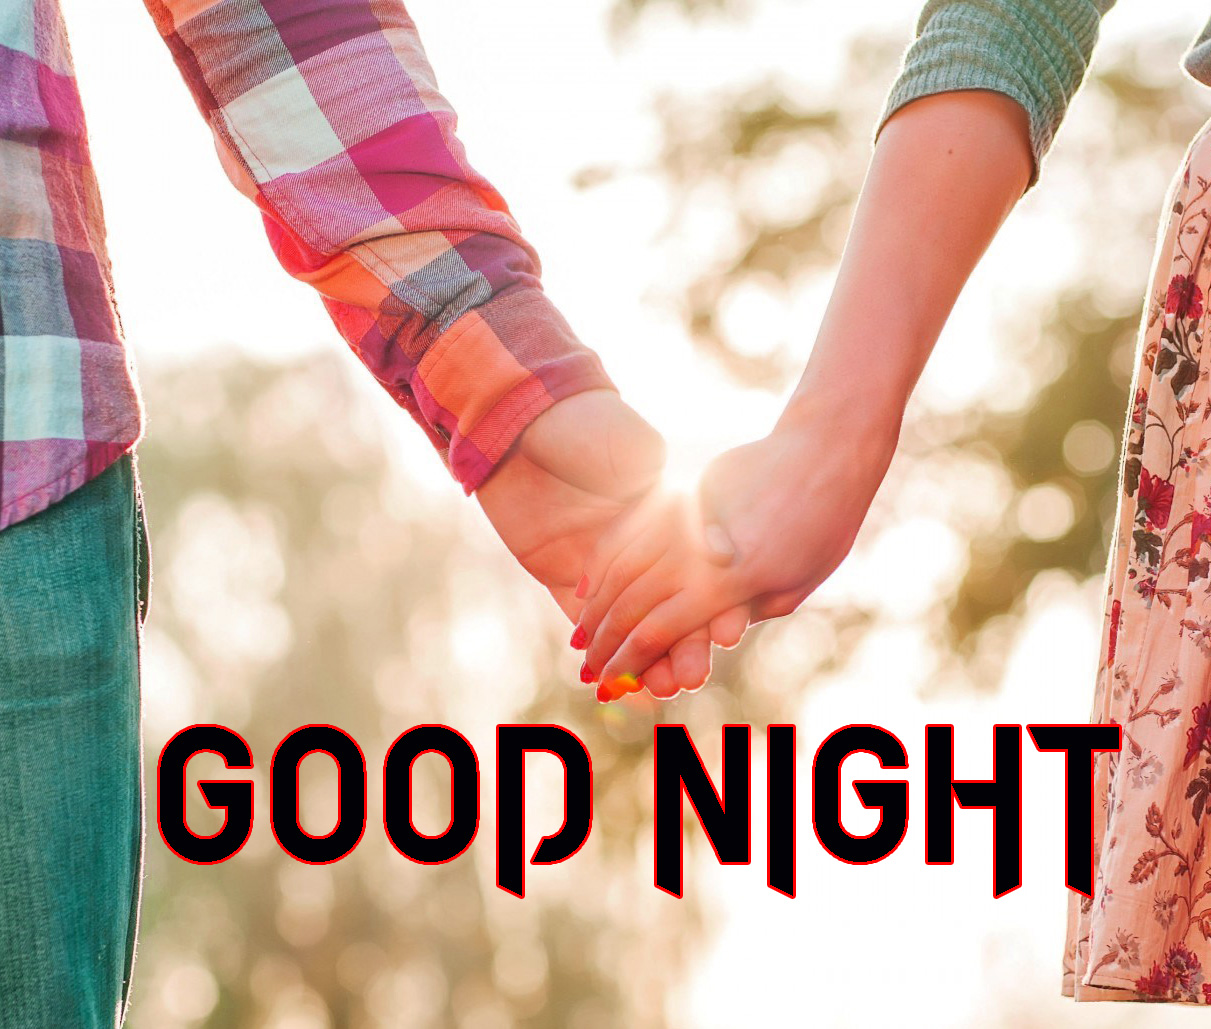 BOYFRIEND & GIRLFRIEND LOVER GOOD NIGHT IMAGES PHOTO PICTURES FREE HD